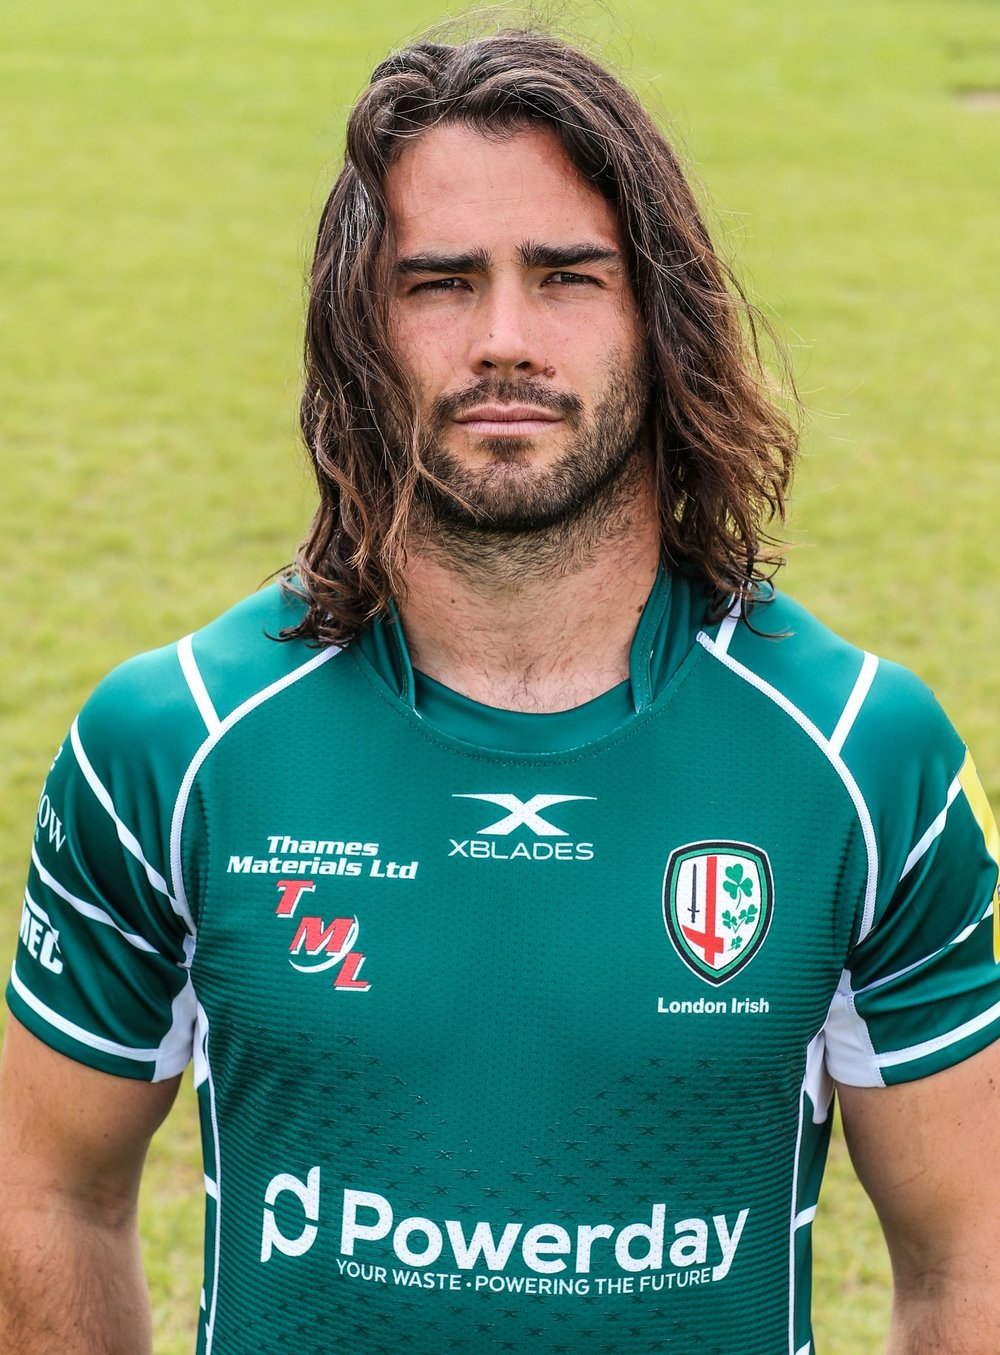 "Tricca sponsor Luke McLean - Tricca are proud to be sponsoring London Irish summer signing Luke McLean for the 2017/18 season.  This marks the start of wide ranging support for the Exiles by Team Tricca.Italian international McLean joins from Benetton Treviso and the 29-year-old said:  ""I am thrilled to have signed for London Irish, a club that has big ambitions, and I am excited to join up with my new team-mates. The club has a top-class coaching set-up and they play some attractive rugby. Hopefully, I can add to that.""london irish match day experienceBack in the Aviva Premiership after a season where Irish won the Championship, losing just one game, the team are fully prepared for the season ahead.Look out for the opportunity to win a matchday experience at the Madejski Stadium with the Tricca Team.There will also be the chance to see England compete at Twickenham in internationals throughout 2017/18."